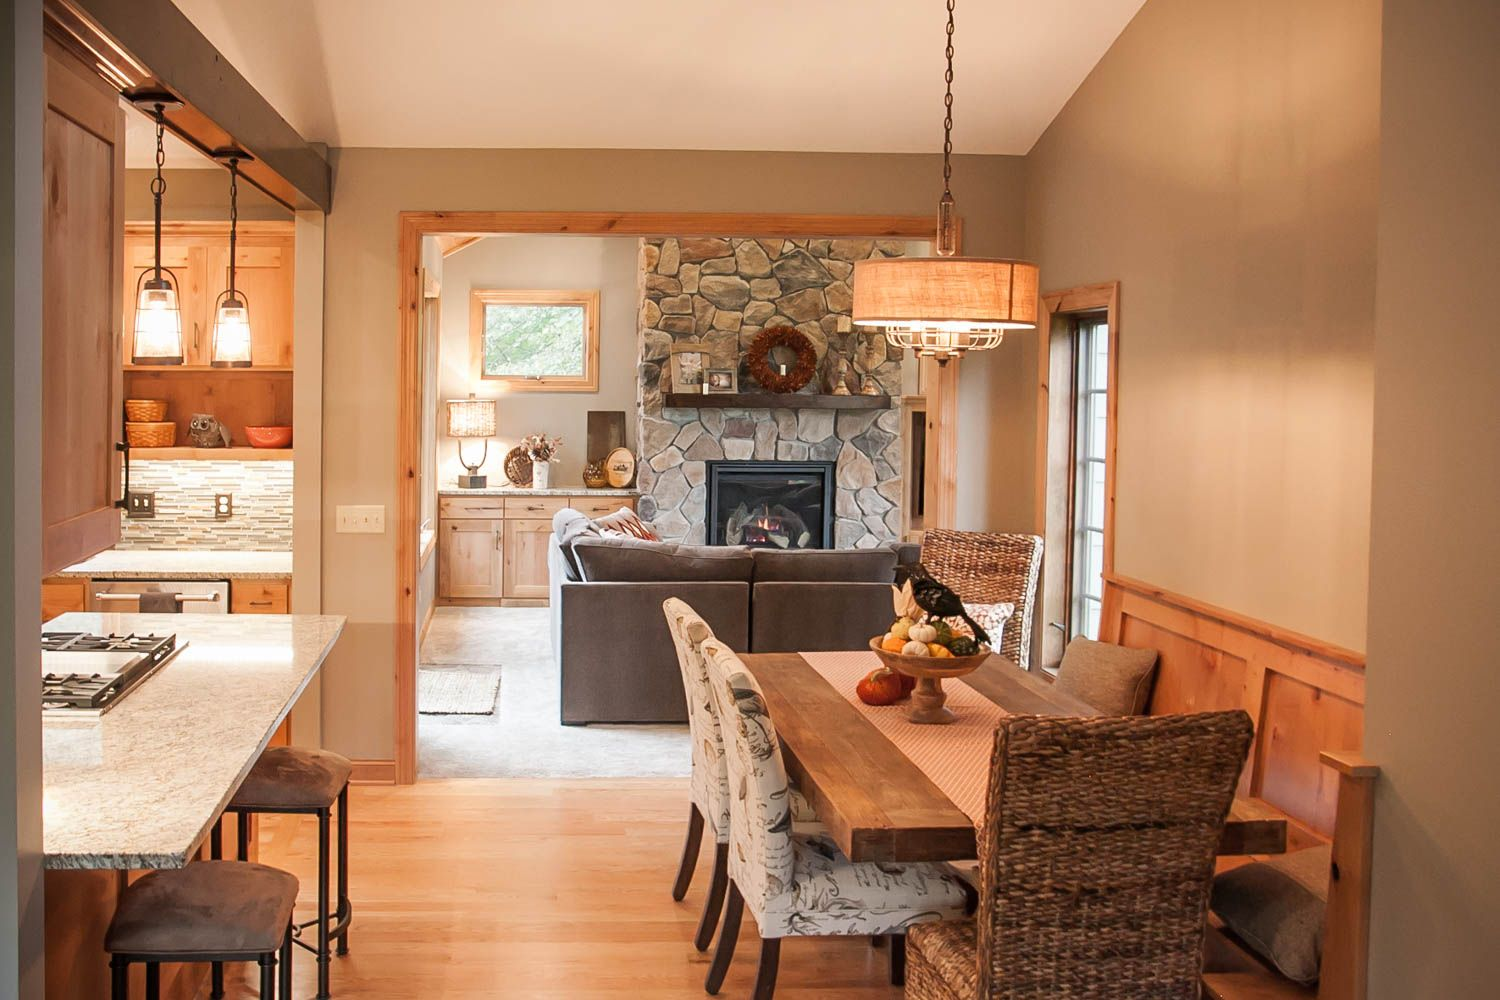 New Addition Family Room And Dining Space Remodel Renovation Rustic Alder Wood Custom Cabinetry Stone